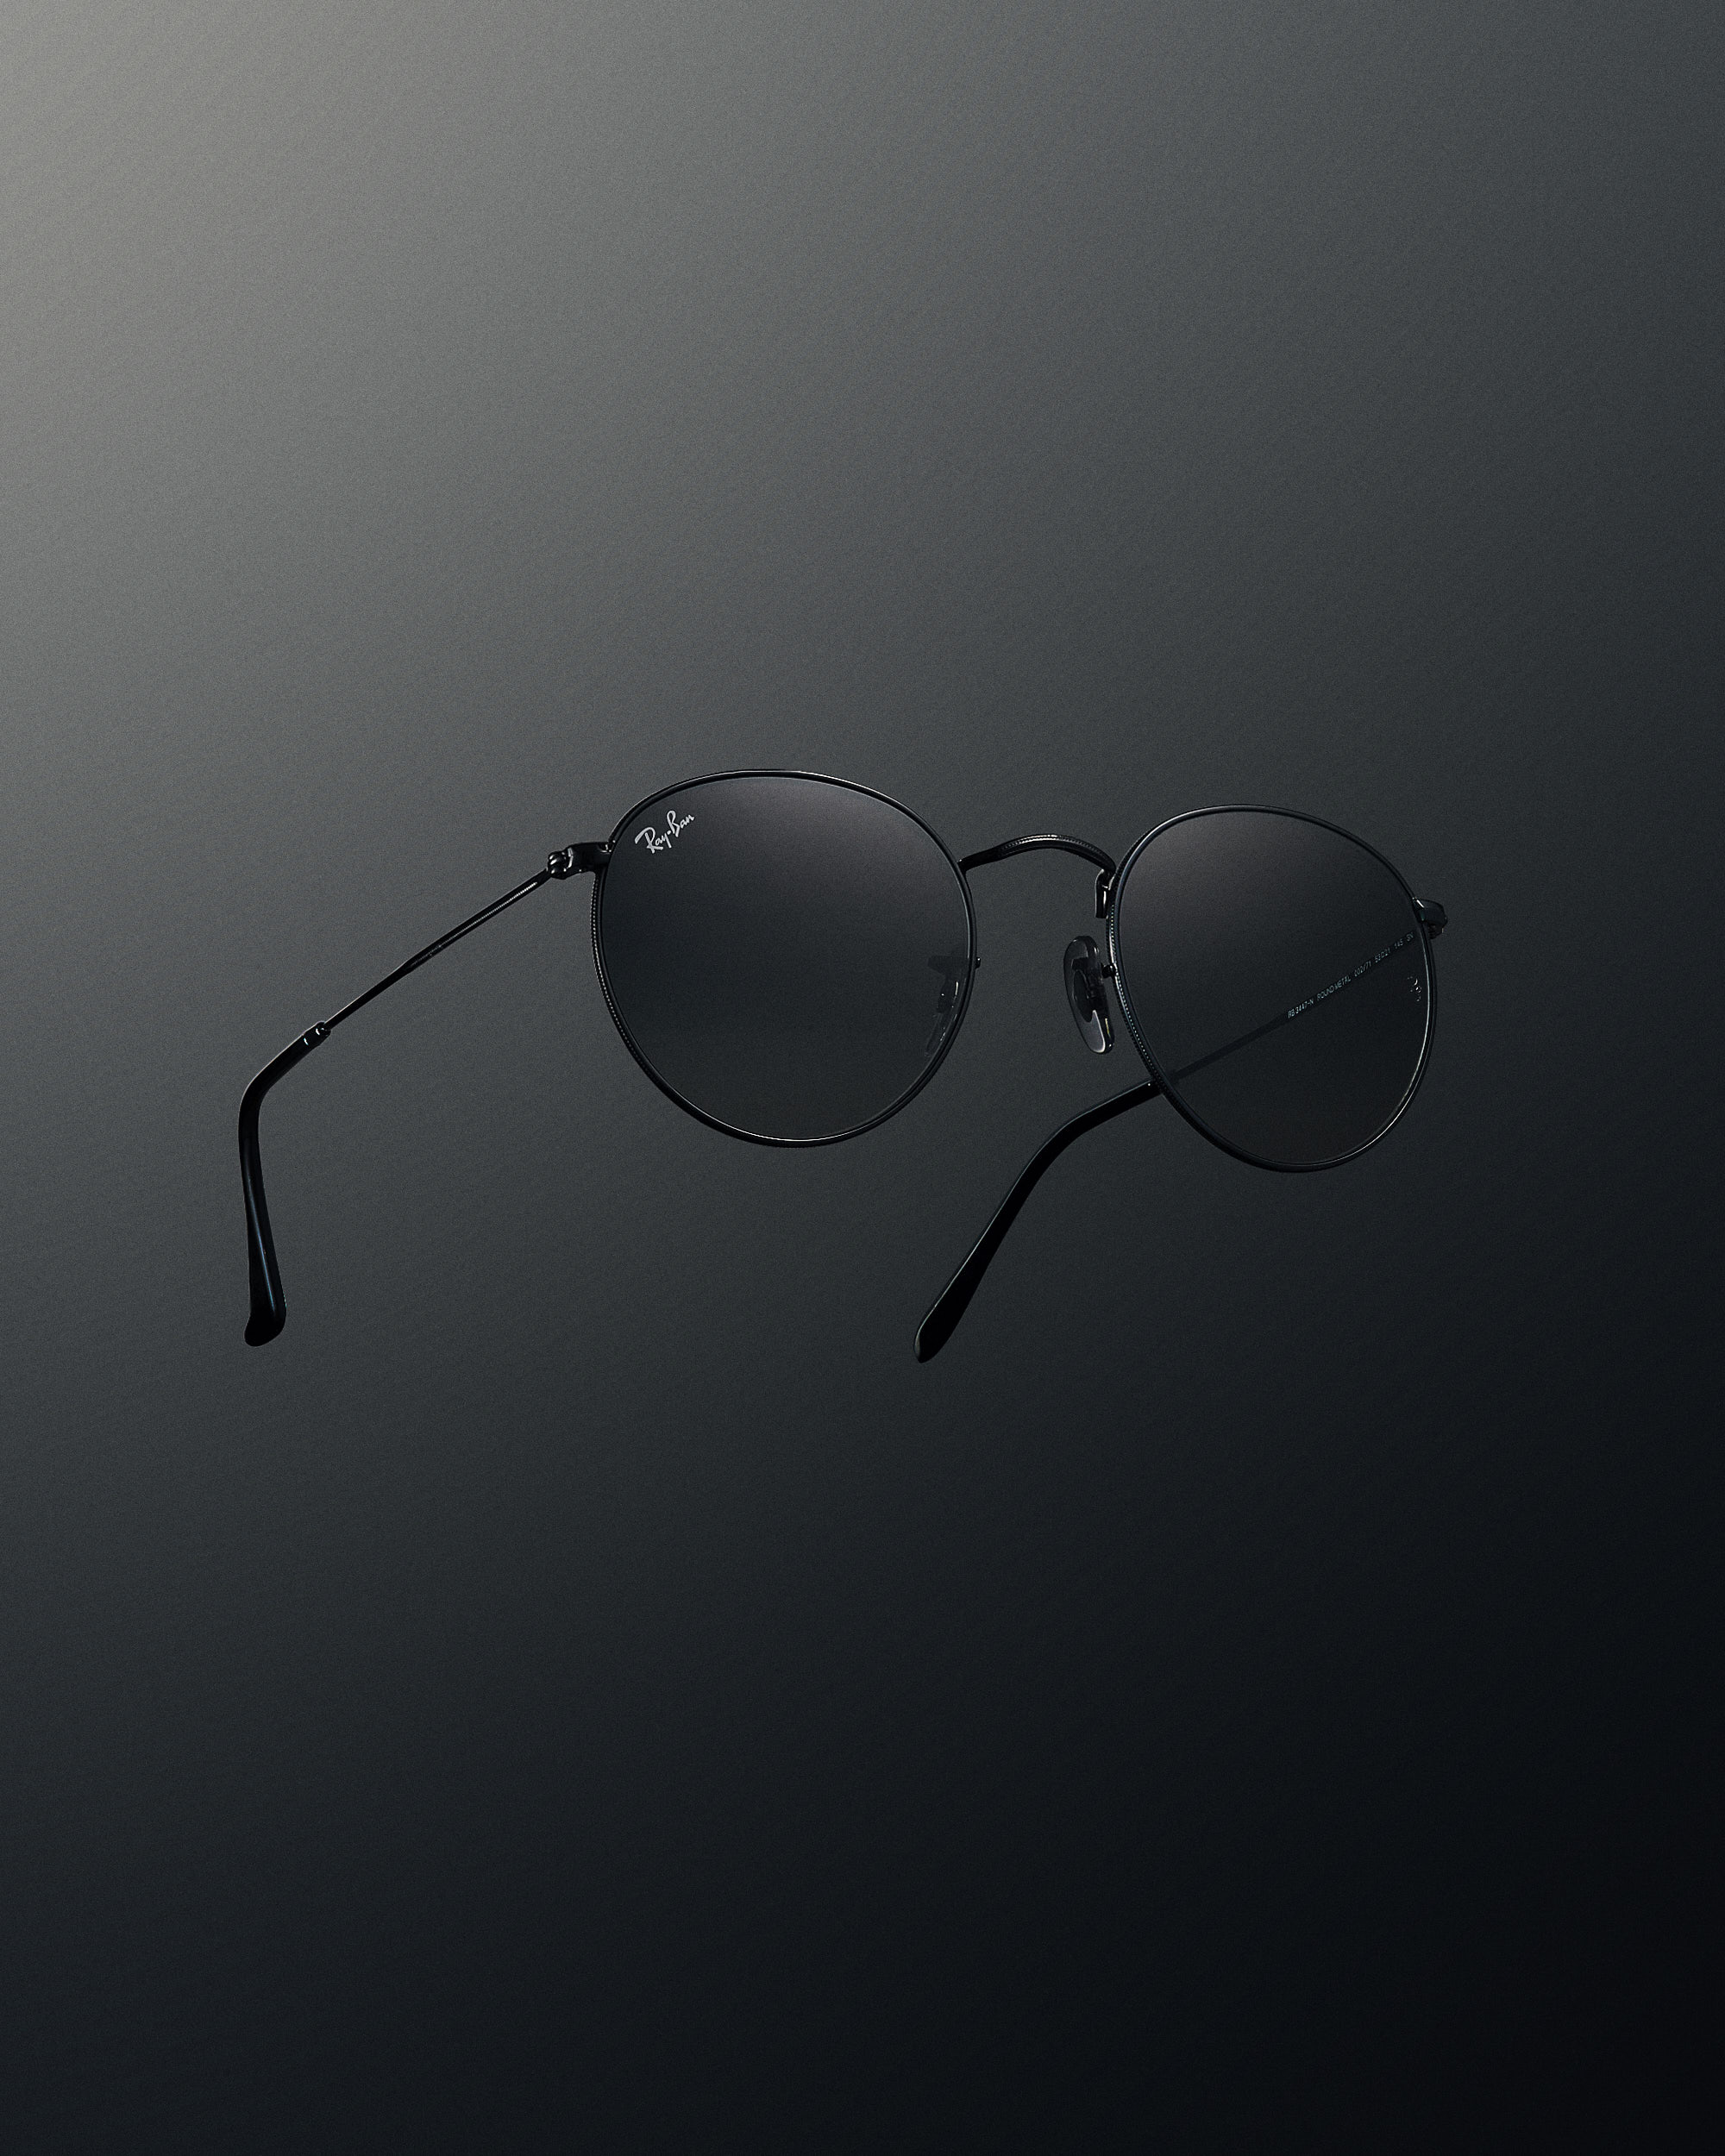 Ray Bans - Product Photographer LA Charlie Sin